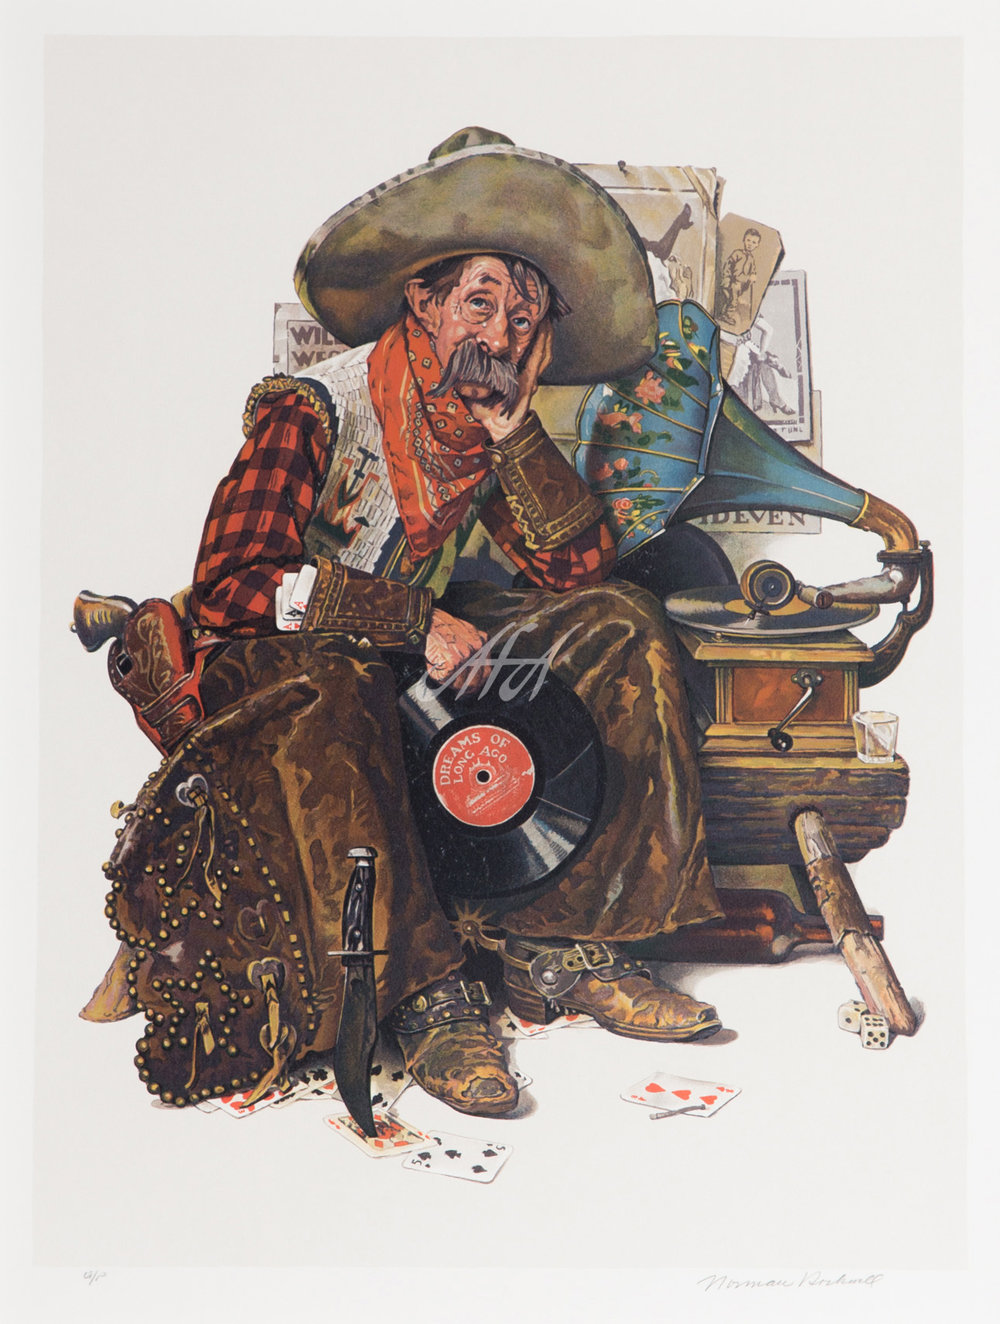 Norman_Rockwell_cowboy_Dreams_of_long_ago LoRes watermark.jpg